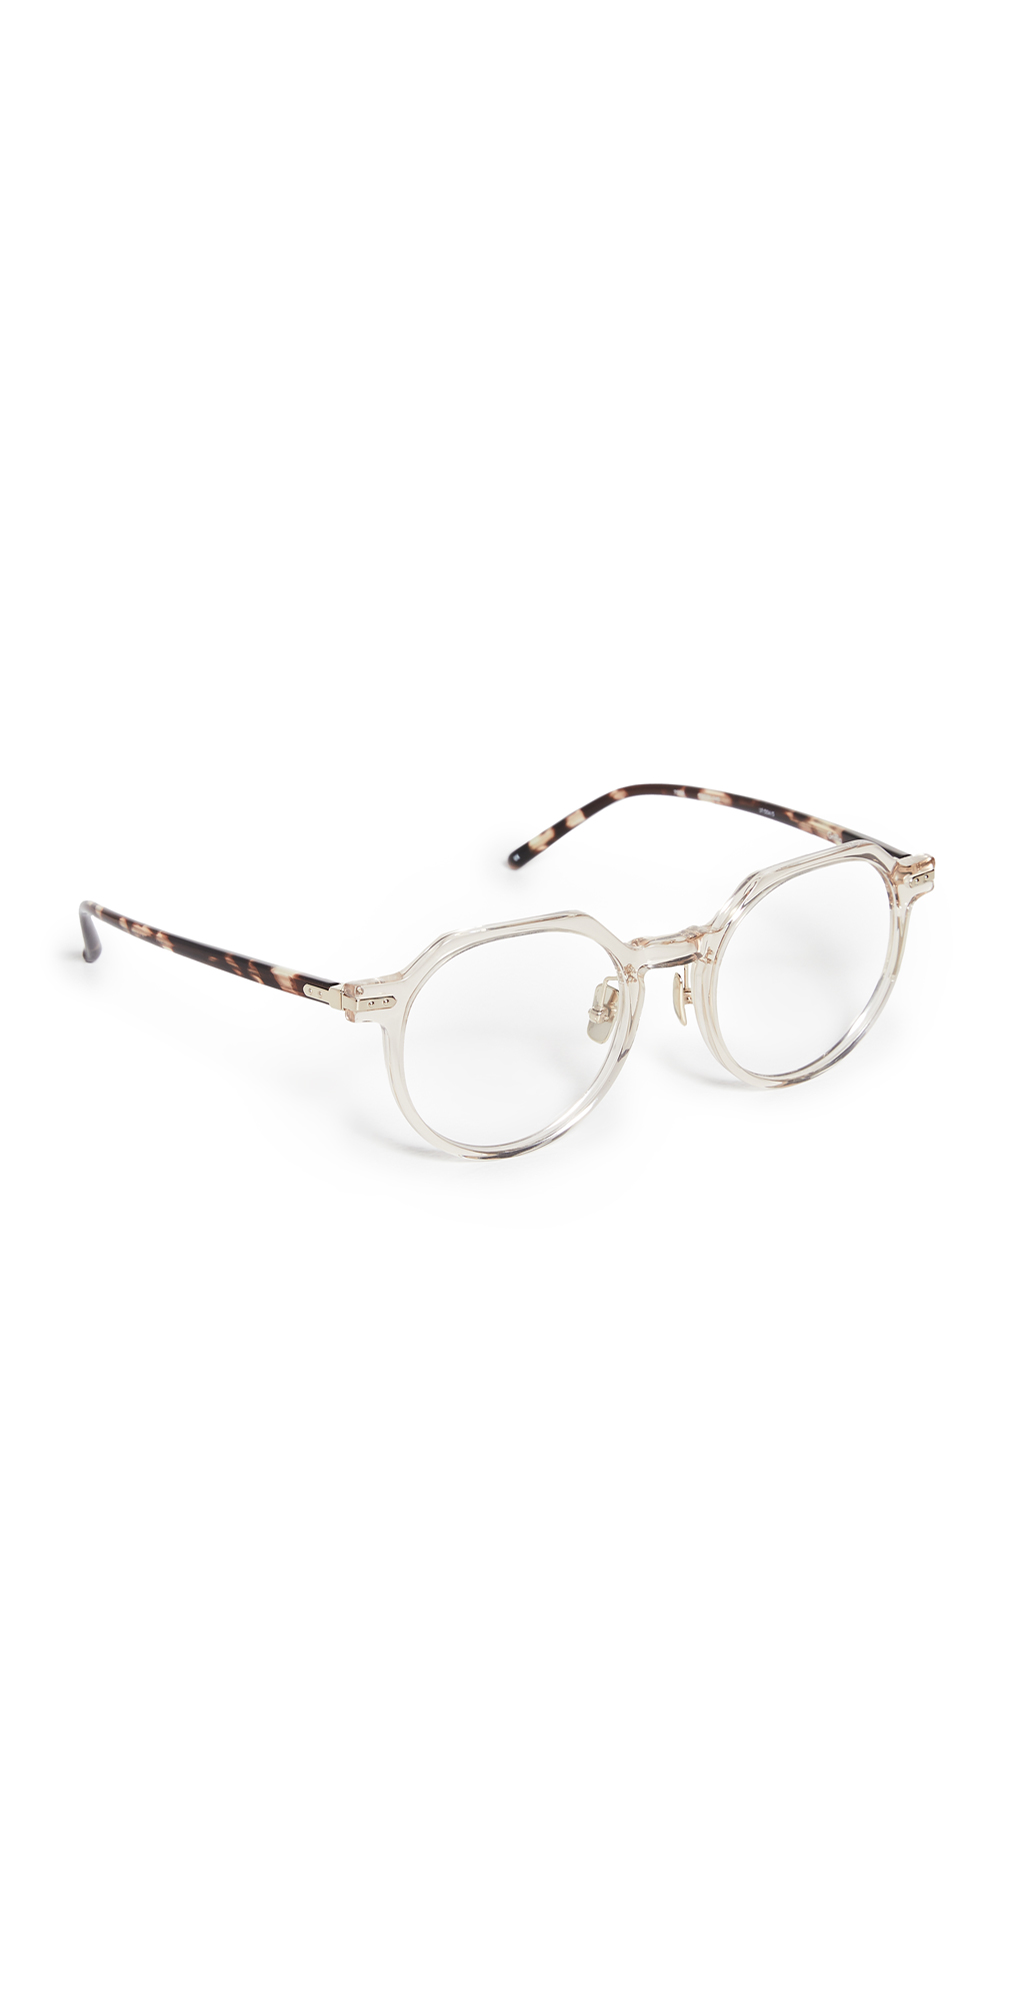 Linear Griffin Glasses